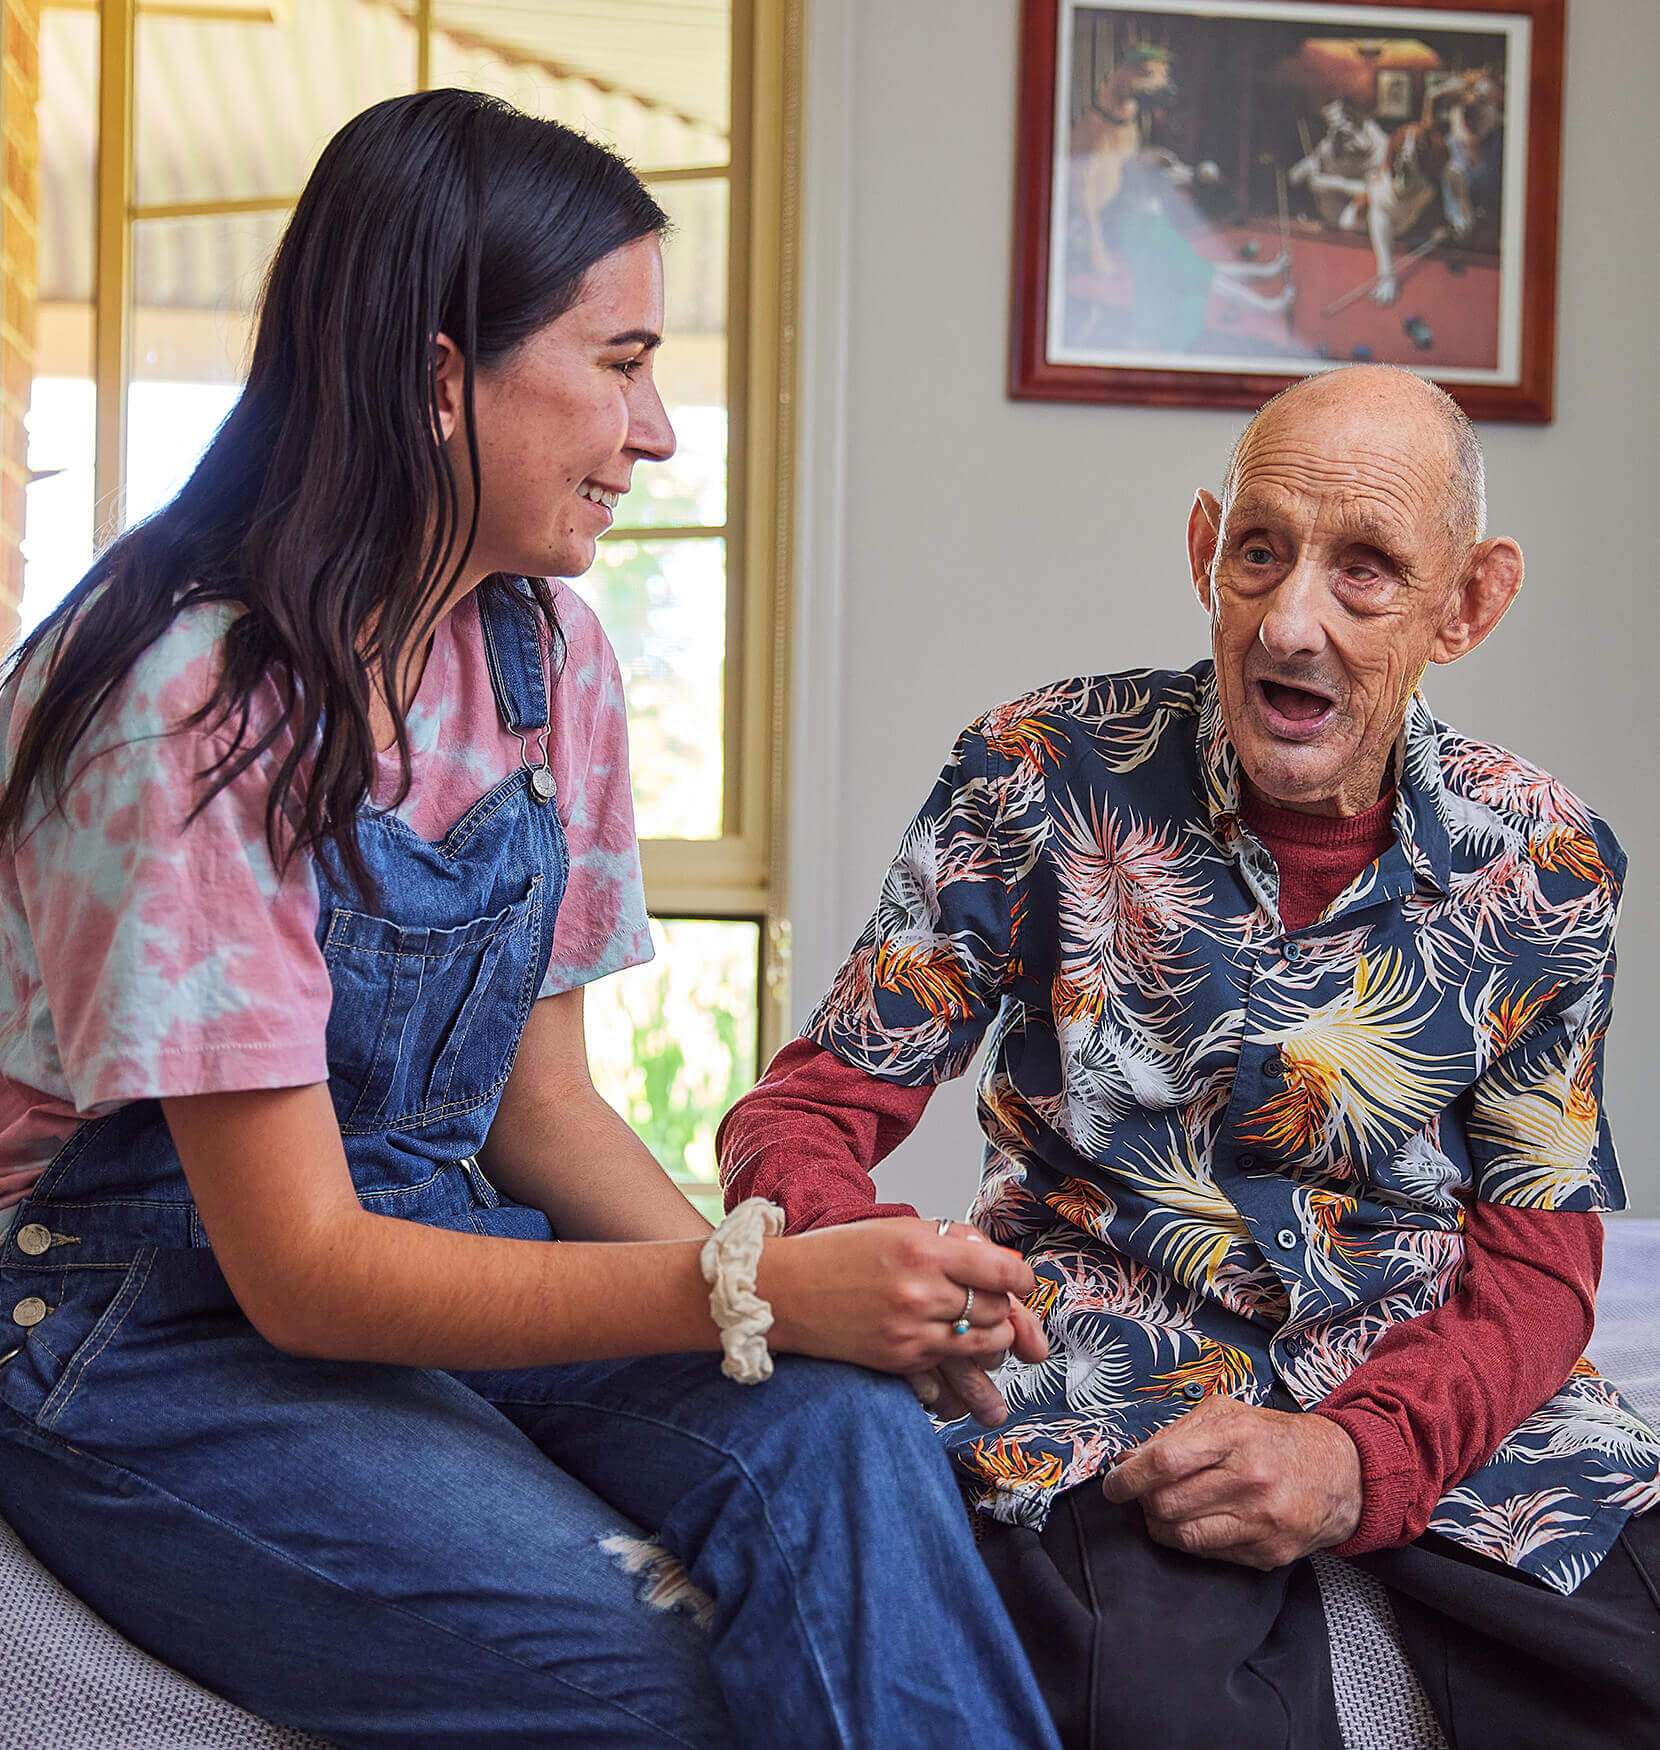 An image of an elderly man in a bright floral shirt sitting next to a young brunette woman wearing overalls. She is gently holding his hand and smiling.